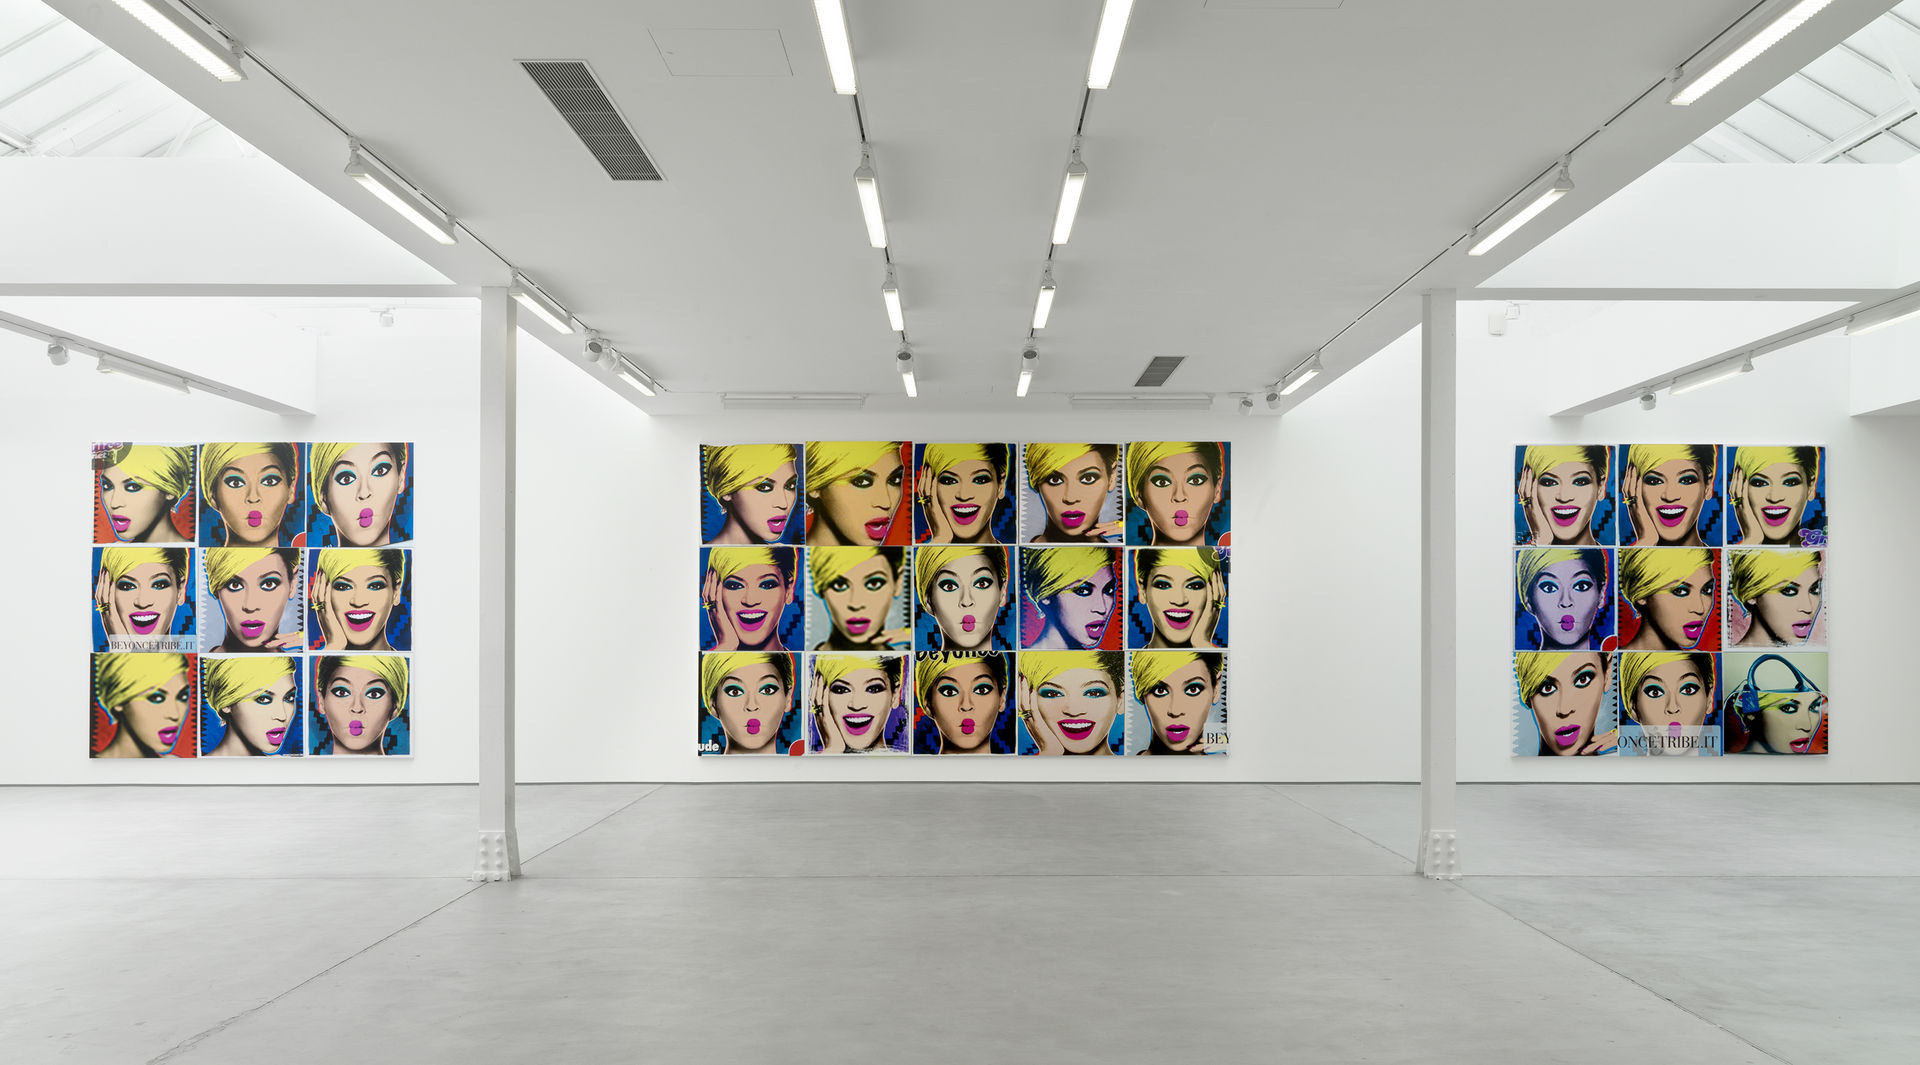 003_Installation view_Jonathan Horowitz_3048cm Paintings_SCHQ_Kingly St_26 March-30 May 2015